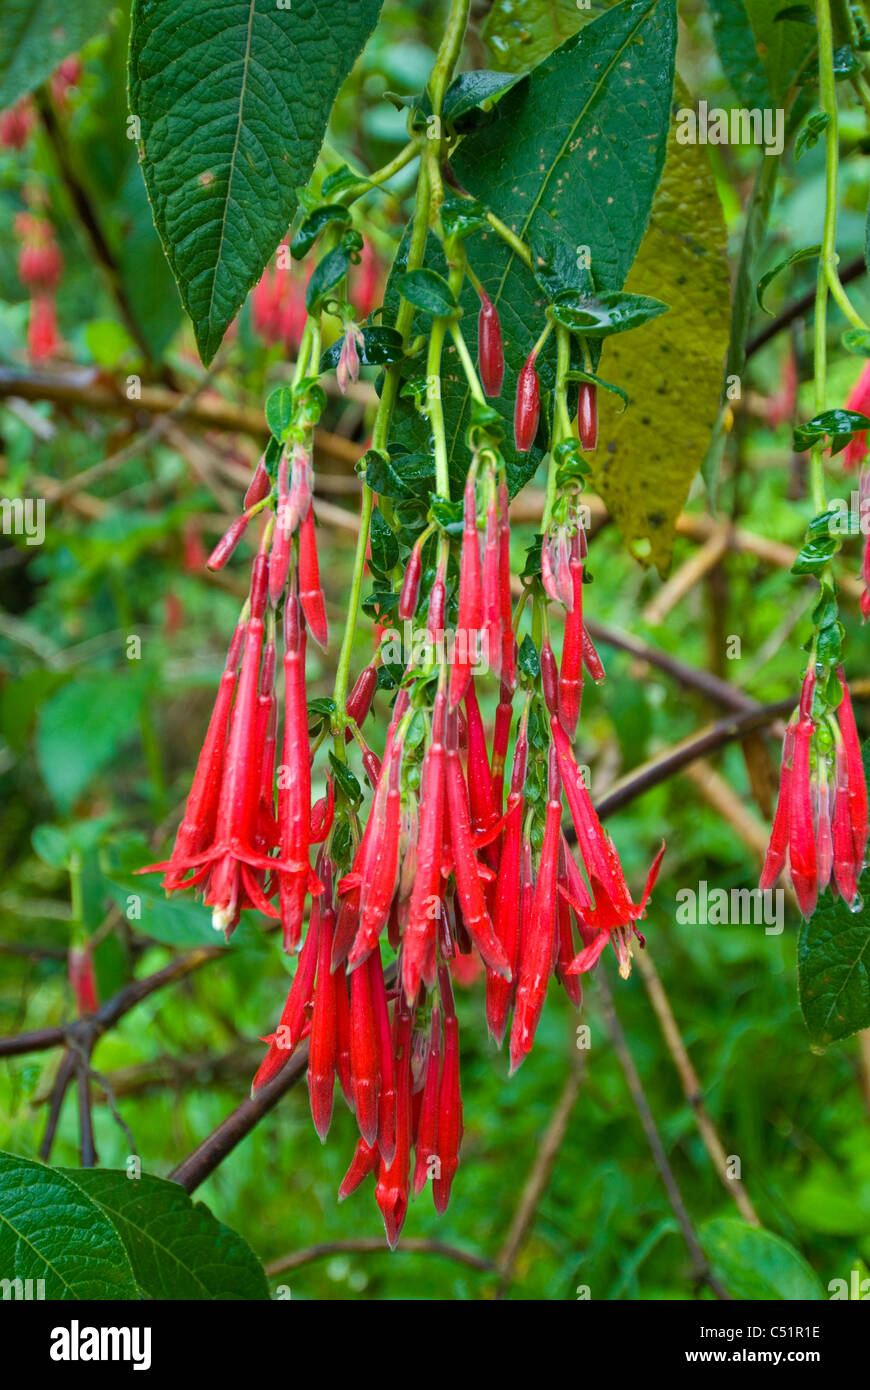 Salvia (Labiateae) growing in the Andes cloud forest near the Inca Trail in Peru Stock Photo